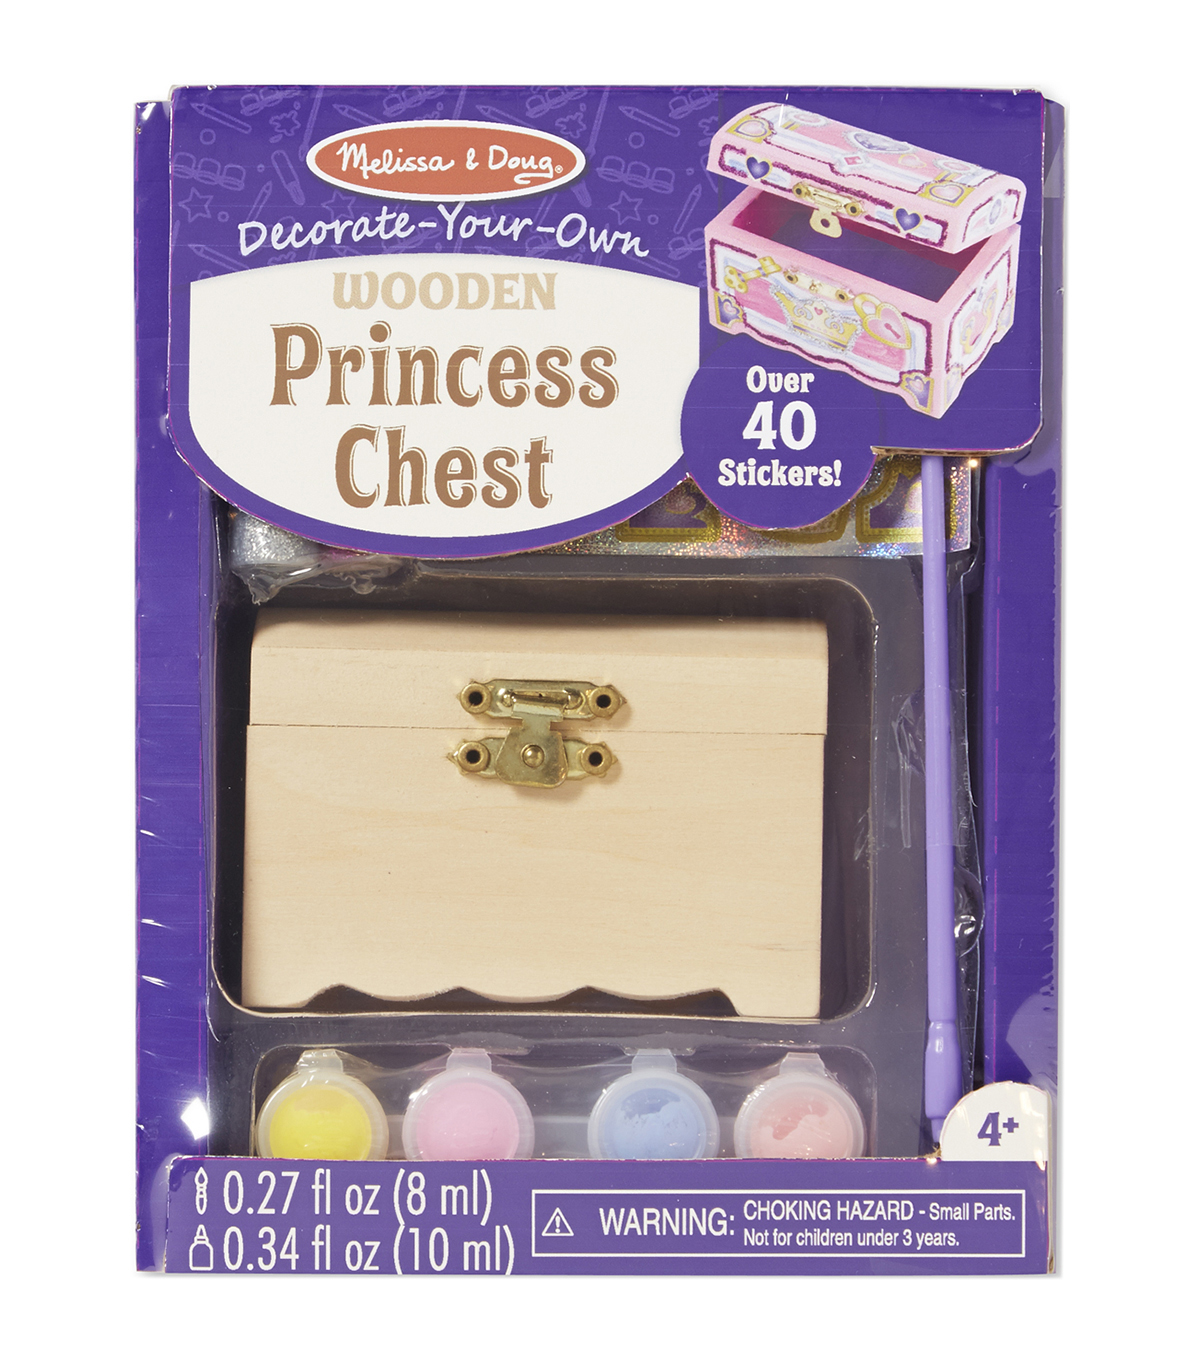 Melissa & Doug Decorate-Your-Own Wooden Princess Chest Craft Kit